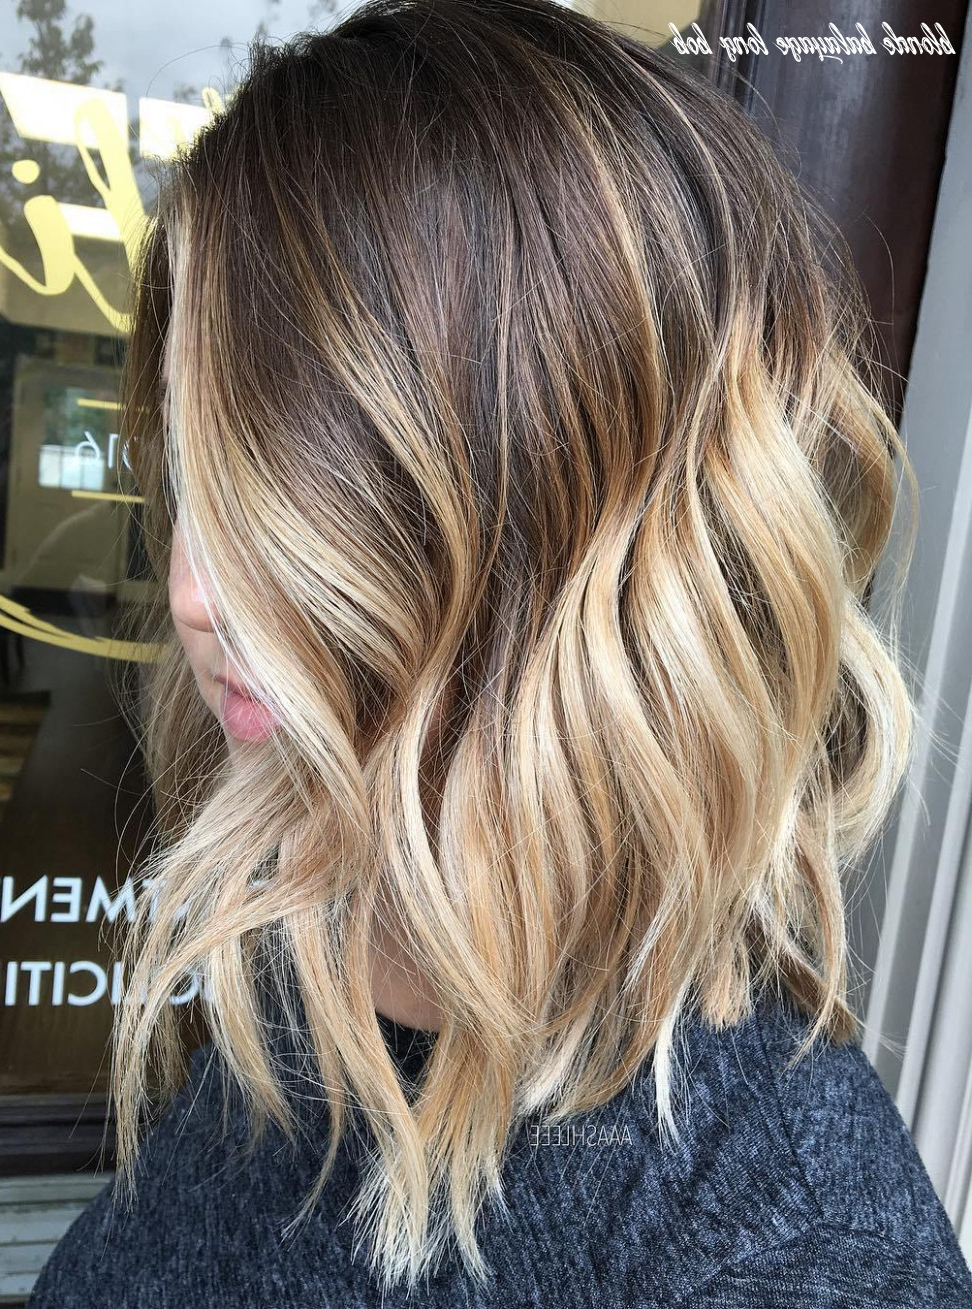 Featured Photo of Long Pixie Hairstyles With Dramatic Blonde Balayage